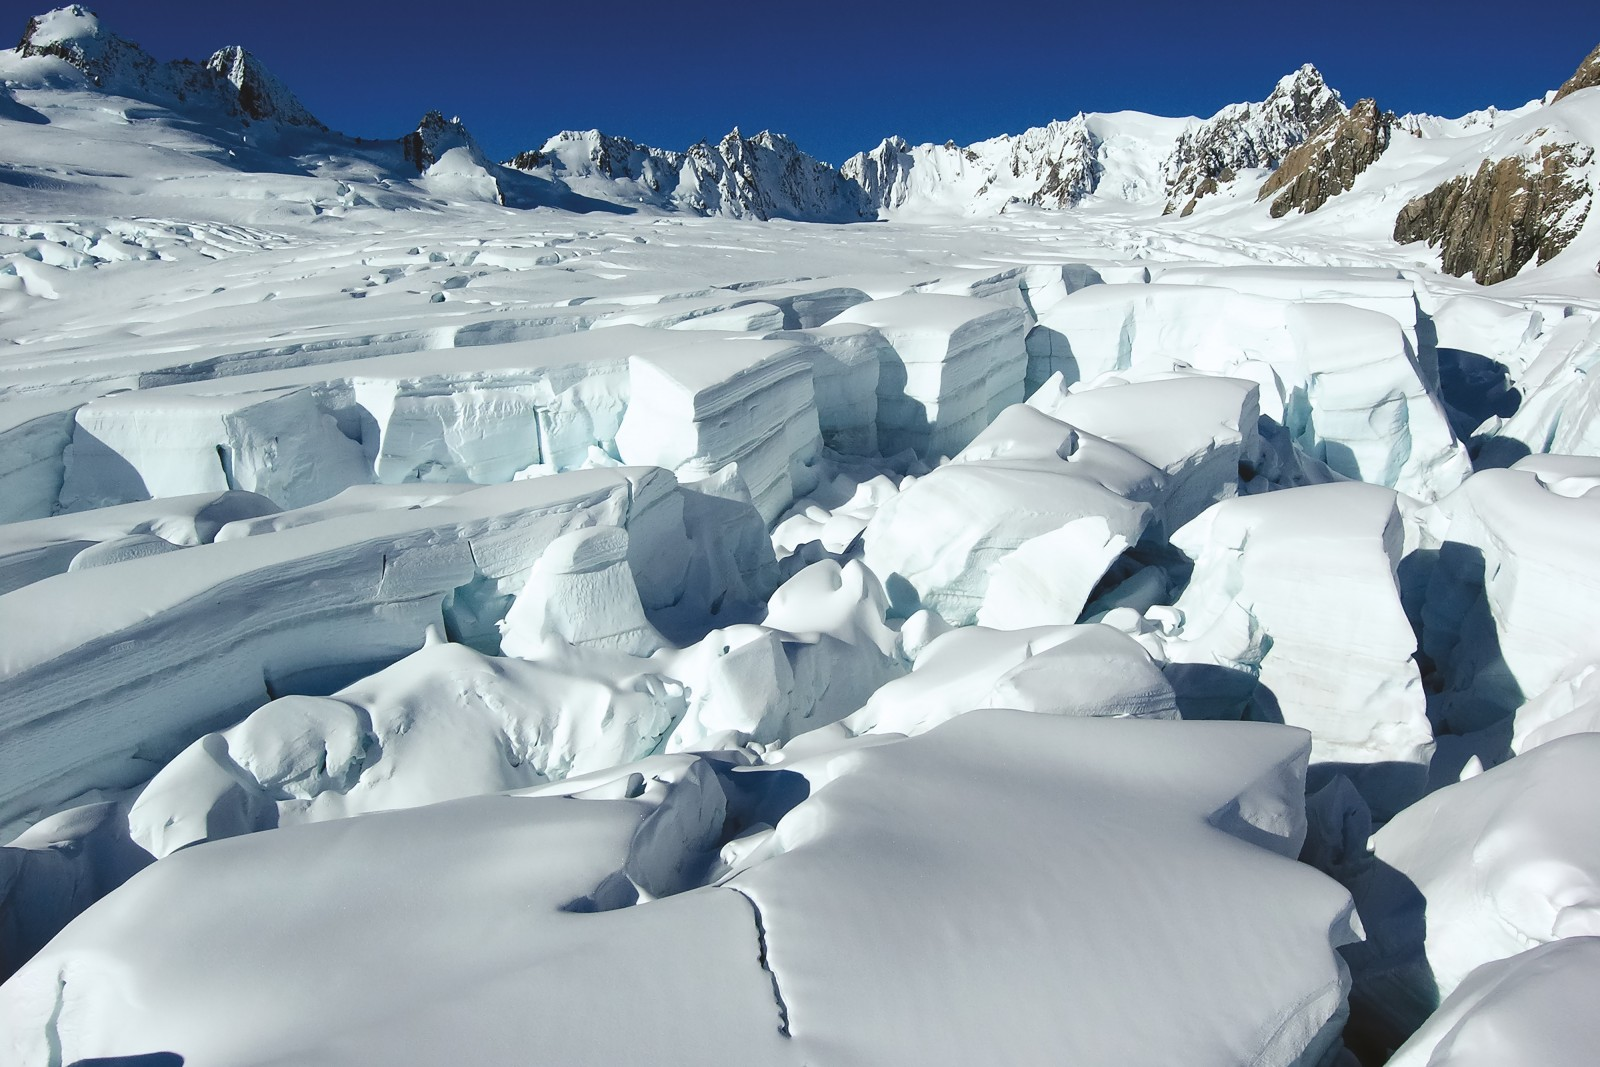 At the top of the glacier, snow and ice accumulate in an icefi eld or nevé. As ice starts to slide down from this area into the glacier, large cracks develop, splitting the frozen mass into vast marshmellowy blocks. Despite the relatively speedy movement of the Fox and Franz Josef glaciers, it will likely be a decade or two before this ice reaches the terminus.